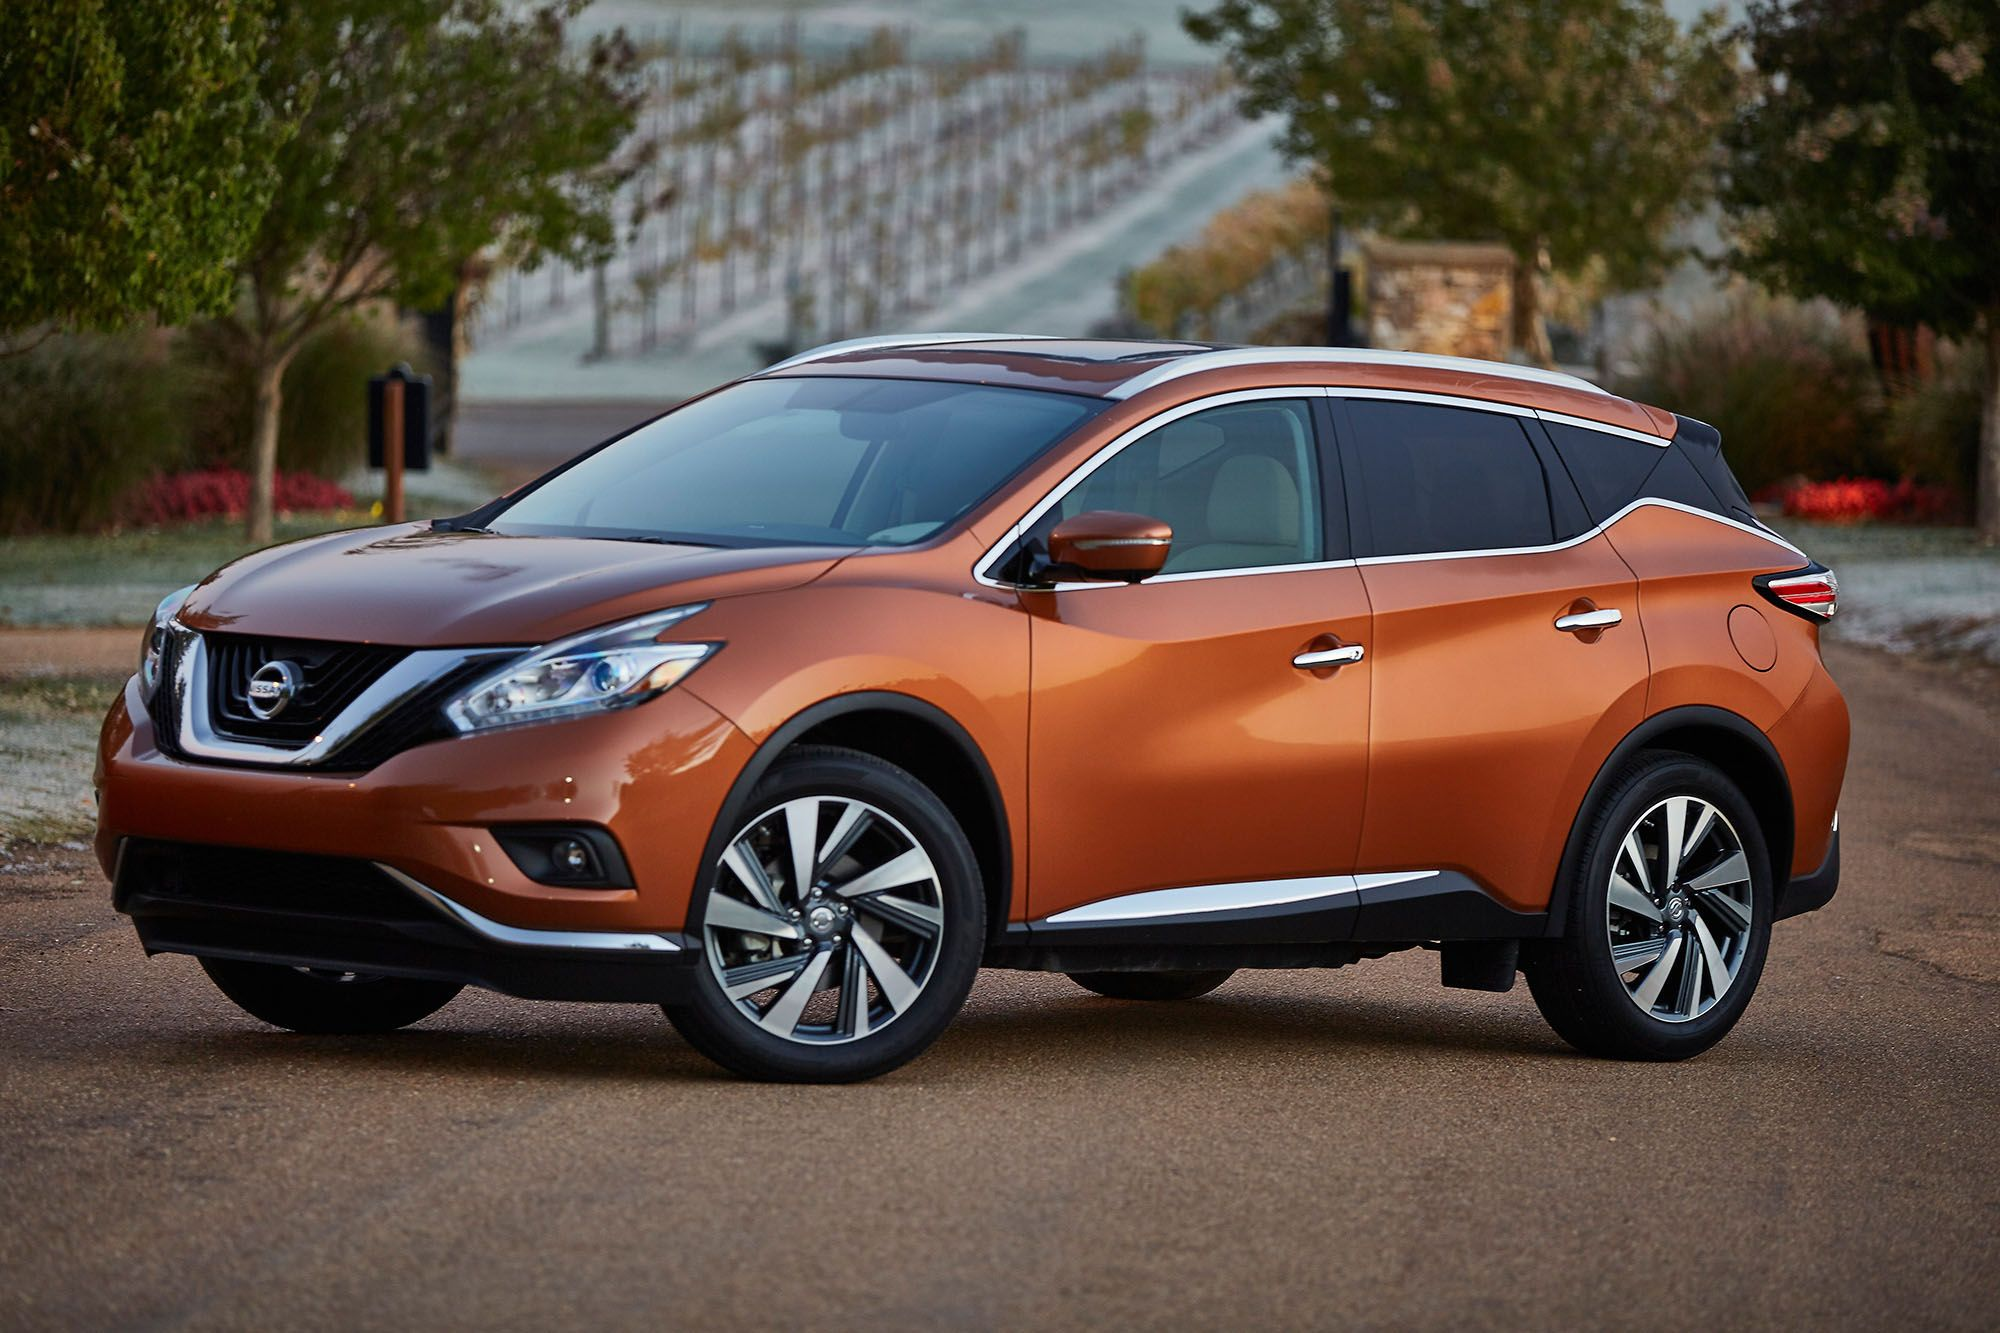 2016 Nissan Murano Review and Changes - http://fordcarsi.com/2016-nissan-murano-review-and-changes/